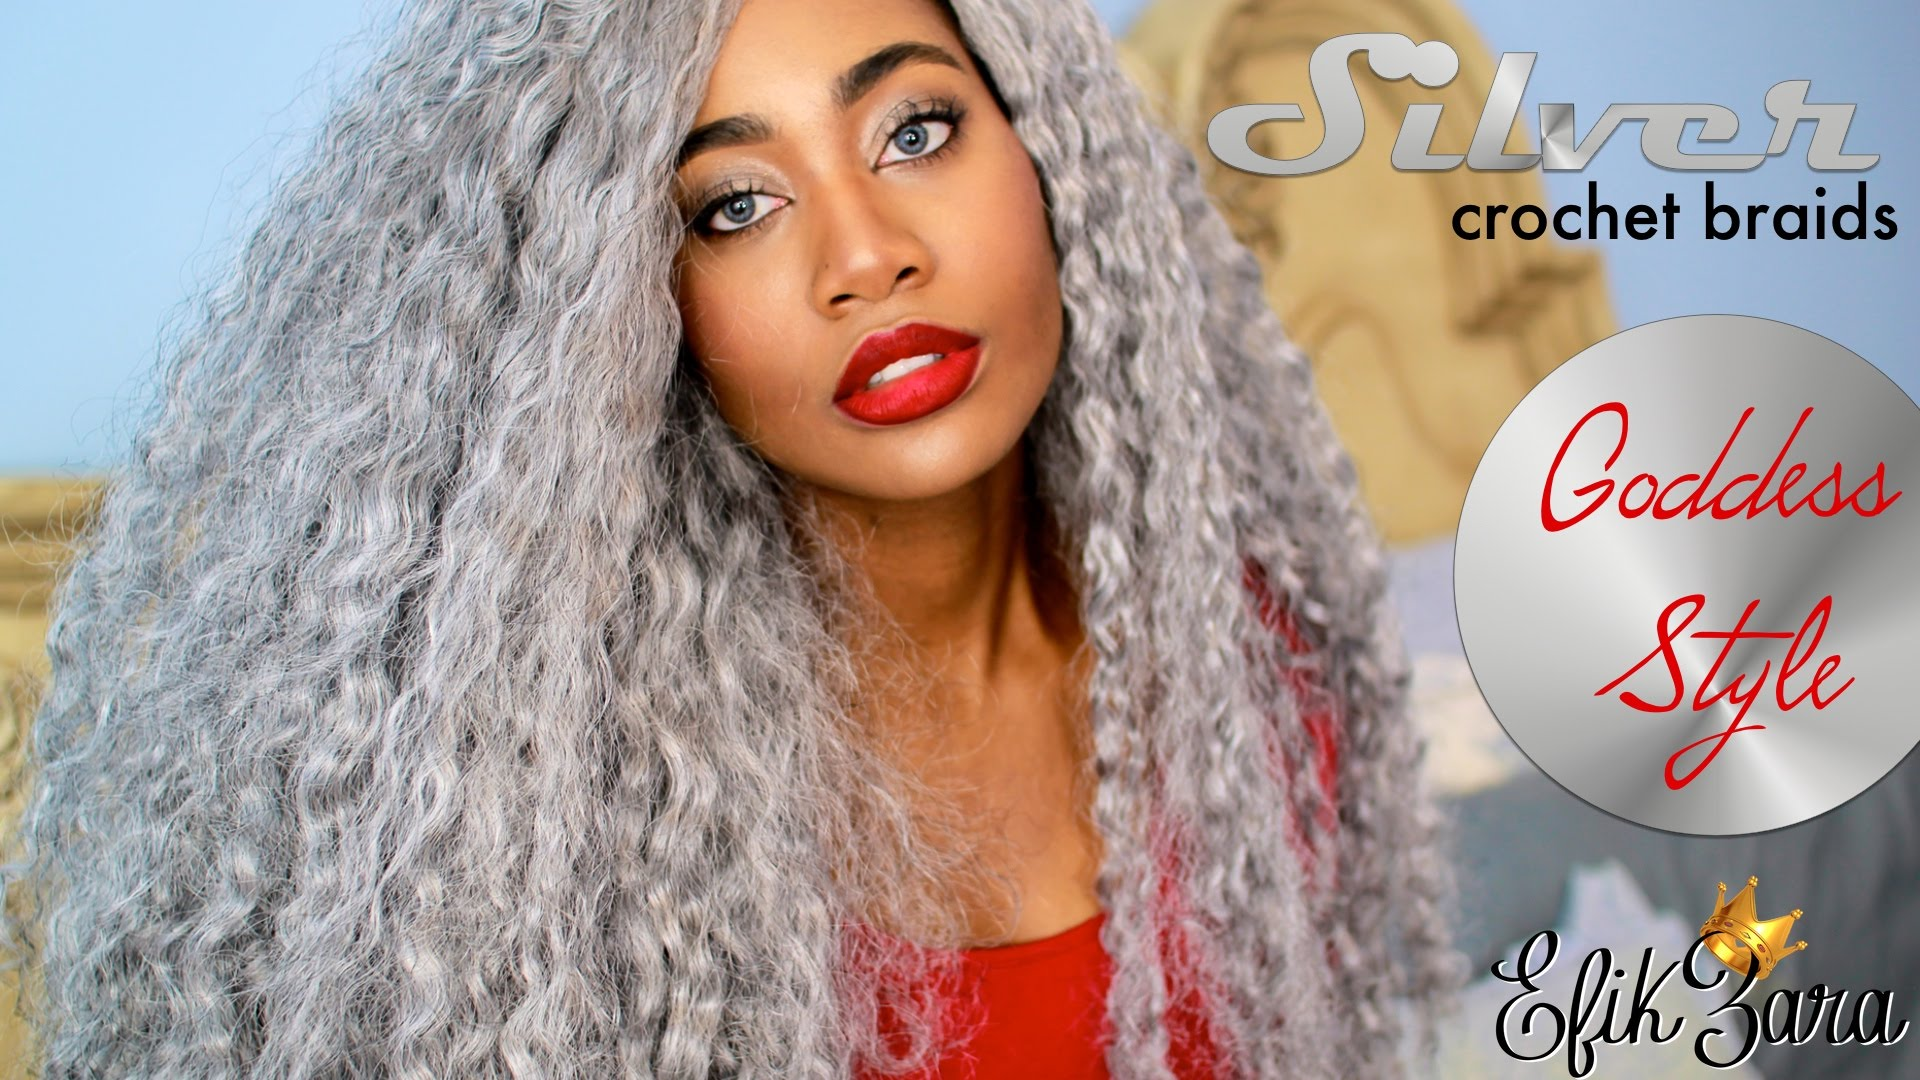 Silver Gray Crochet Braid Hairstyles For Women blackhairstylecuts ...